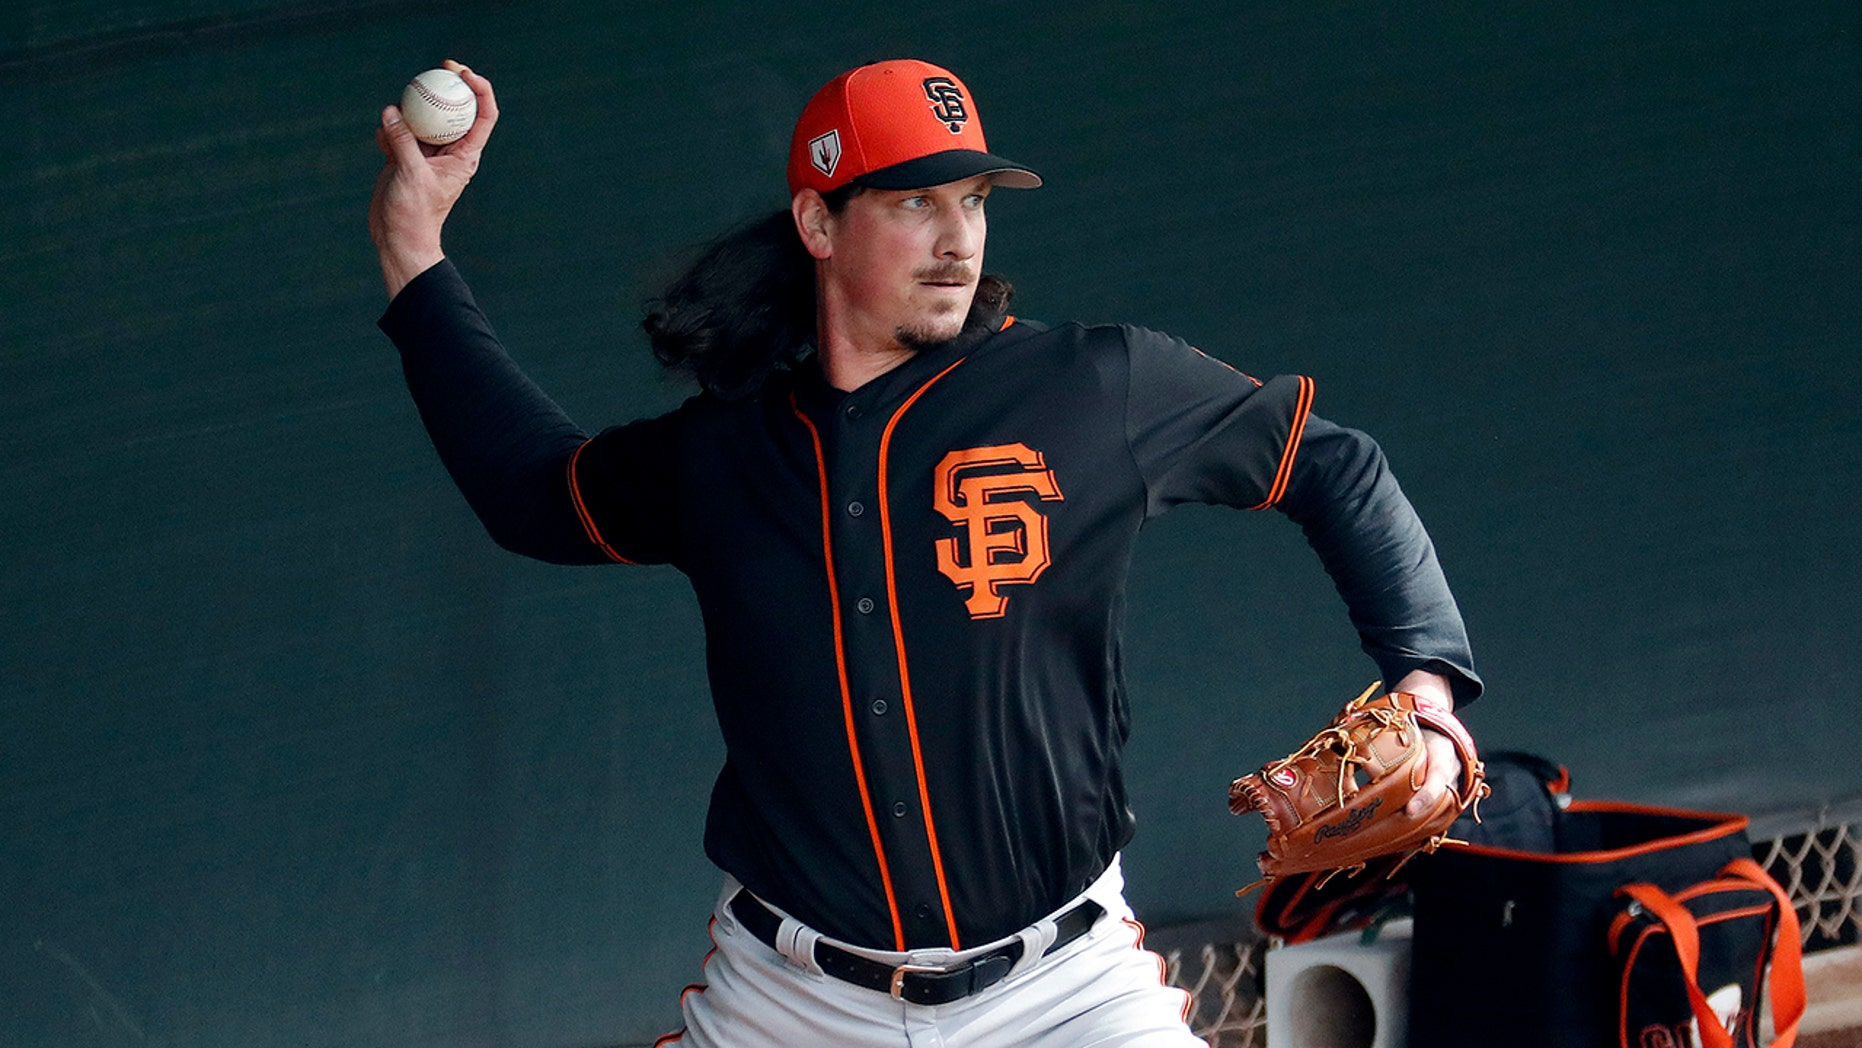 c3280df349f San Francisco Giants pitcher Jeff Samardzija works out during a baseball  spring training practice